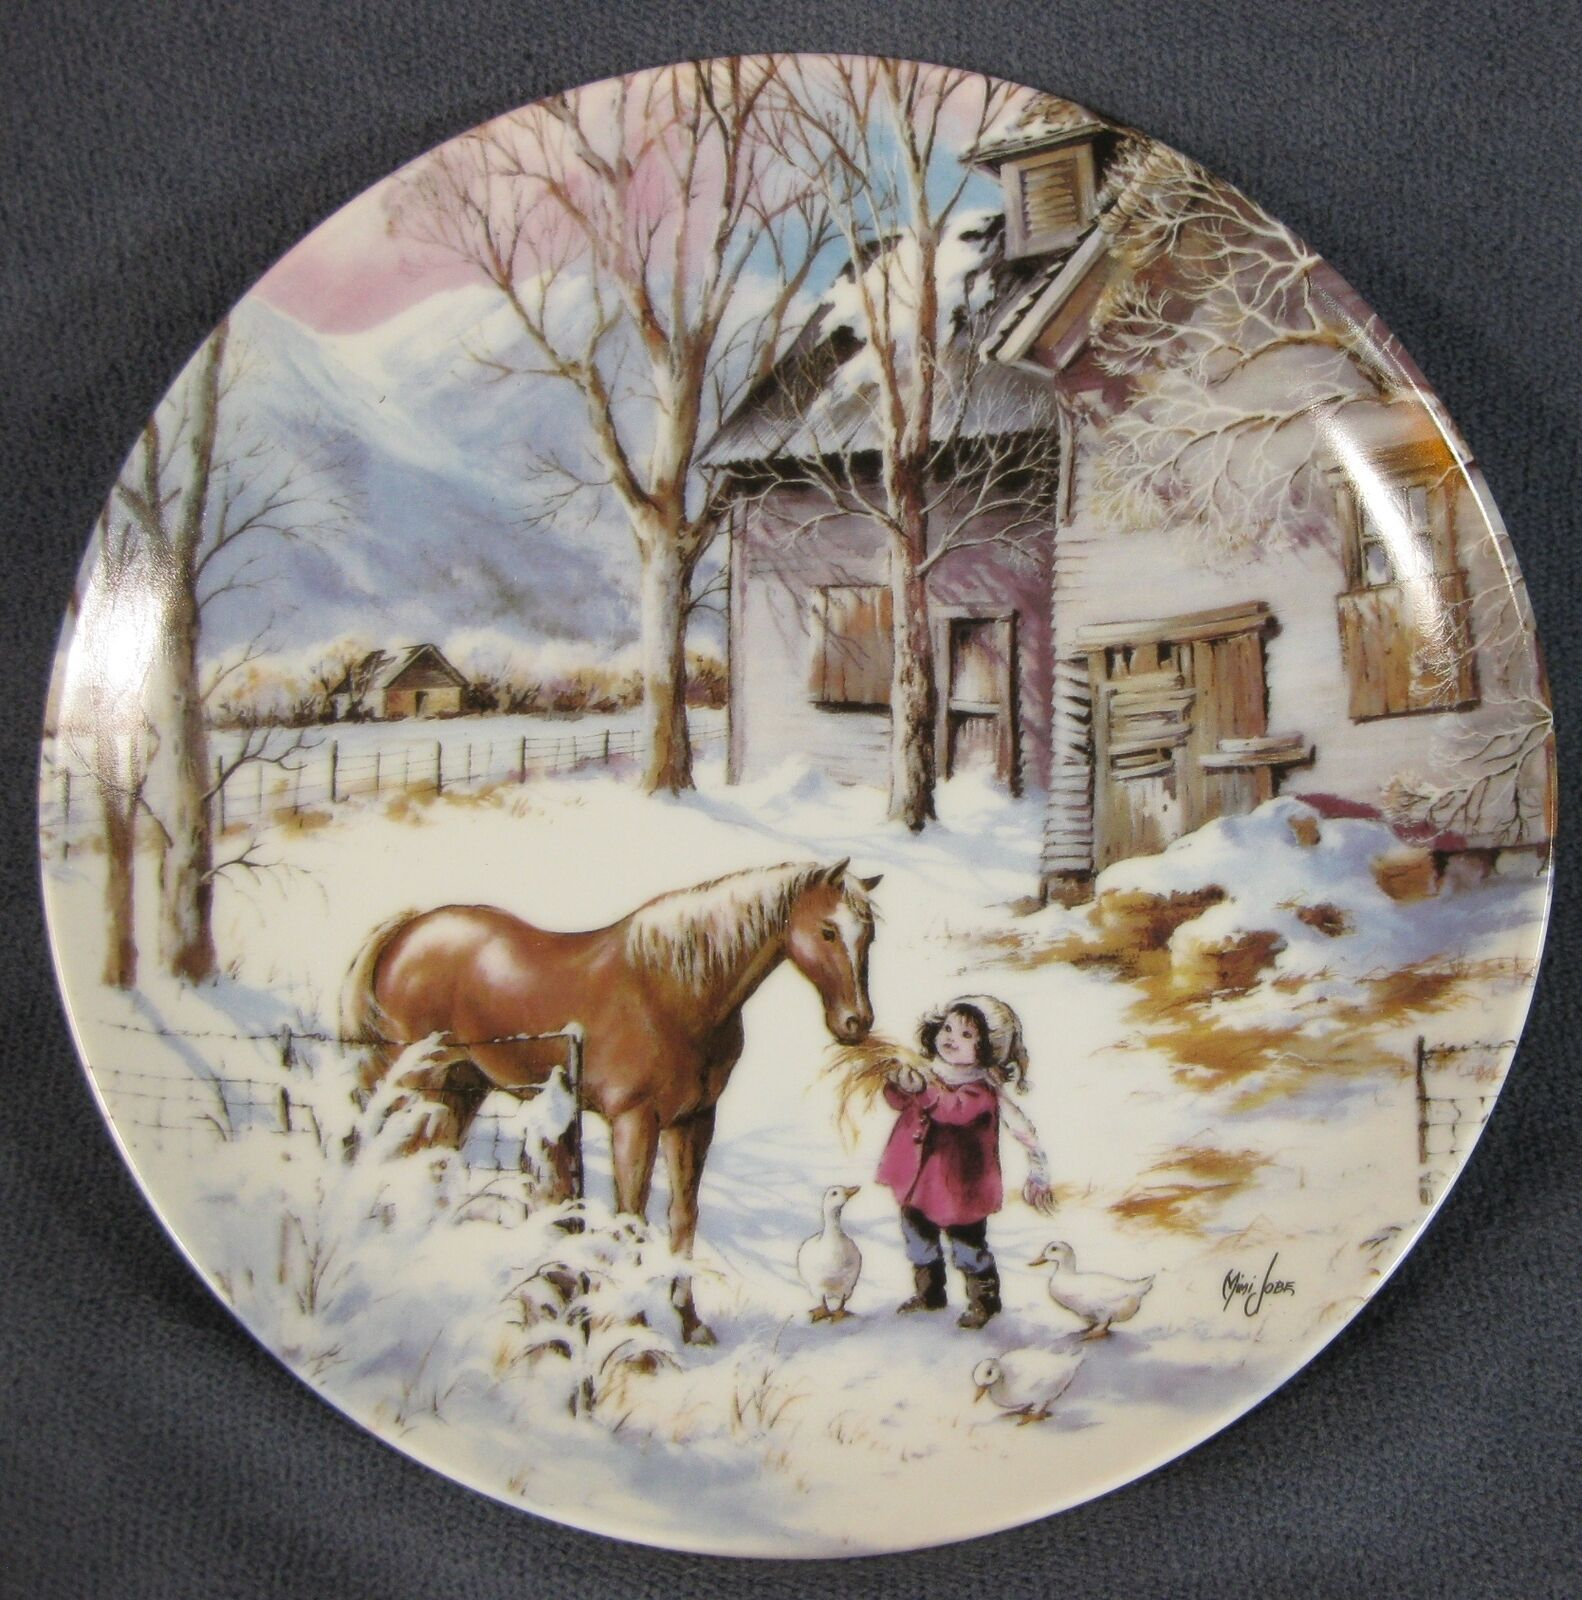 Primary image for Trusted Companion Collector Plate Nature's Child Mimi Jobe Knowles 84-K41-100.5